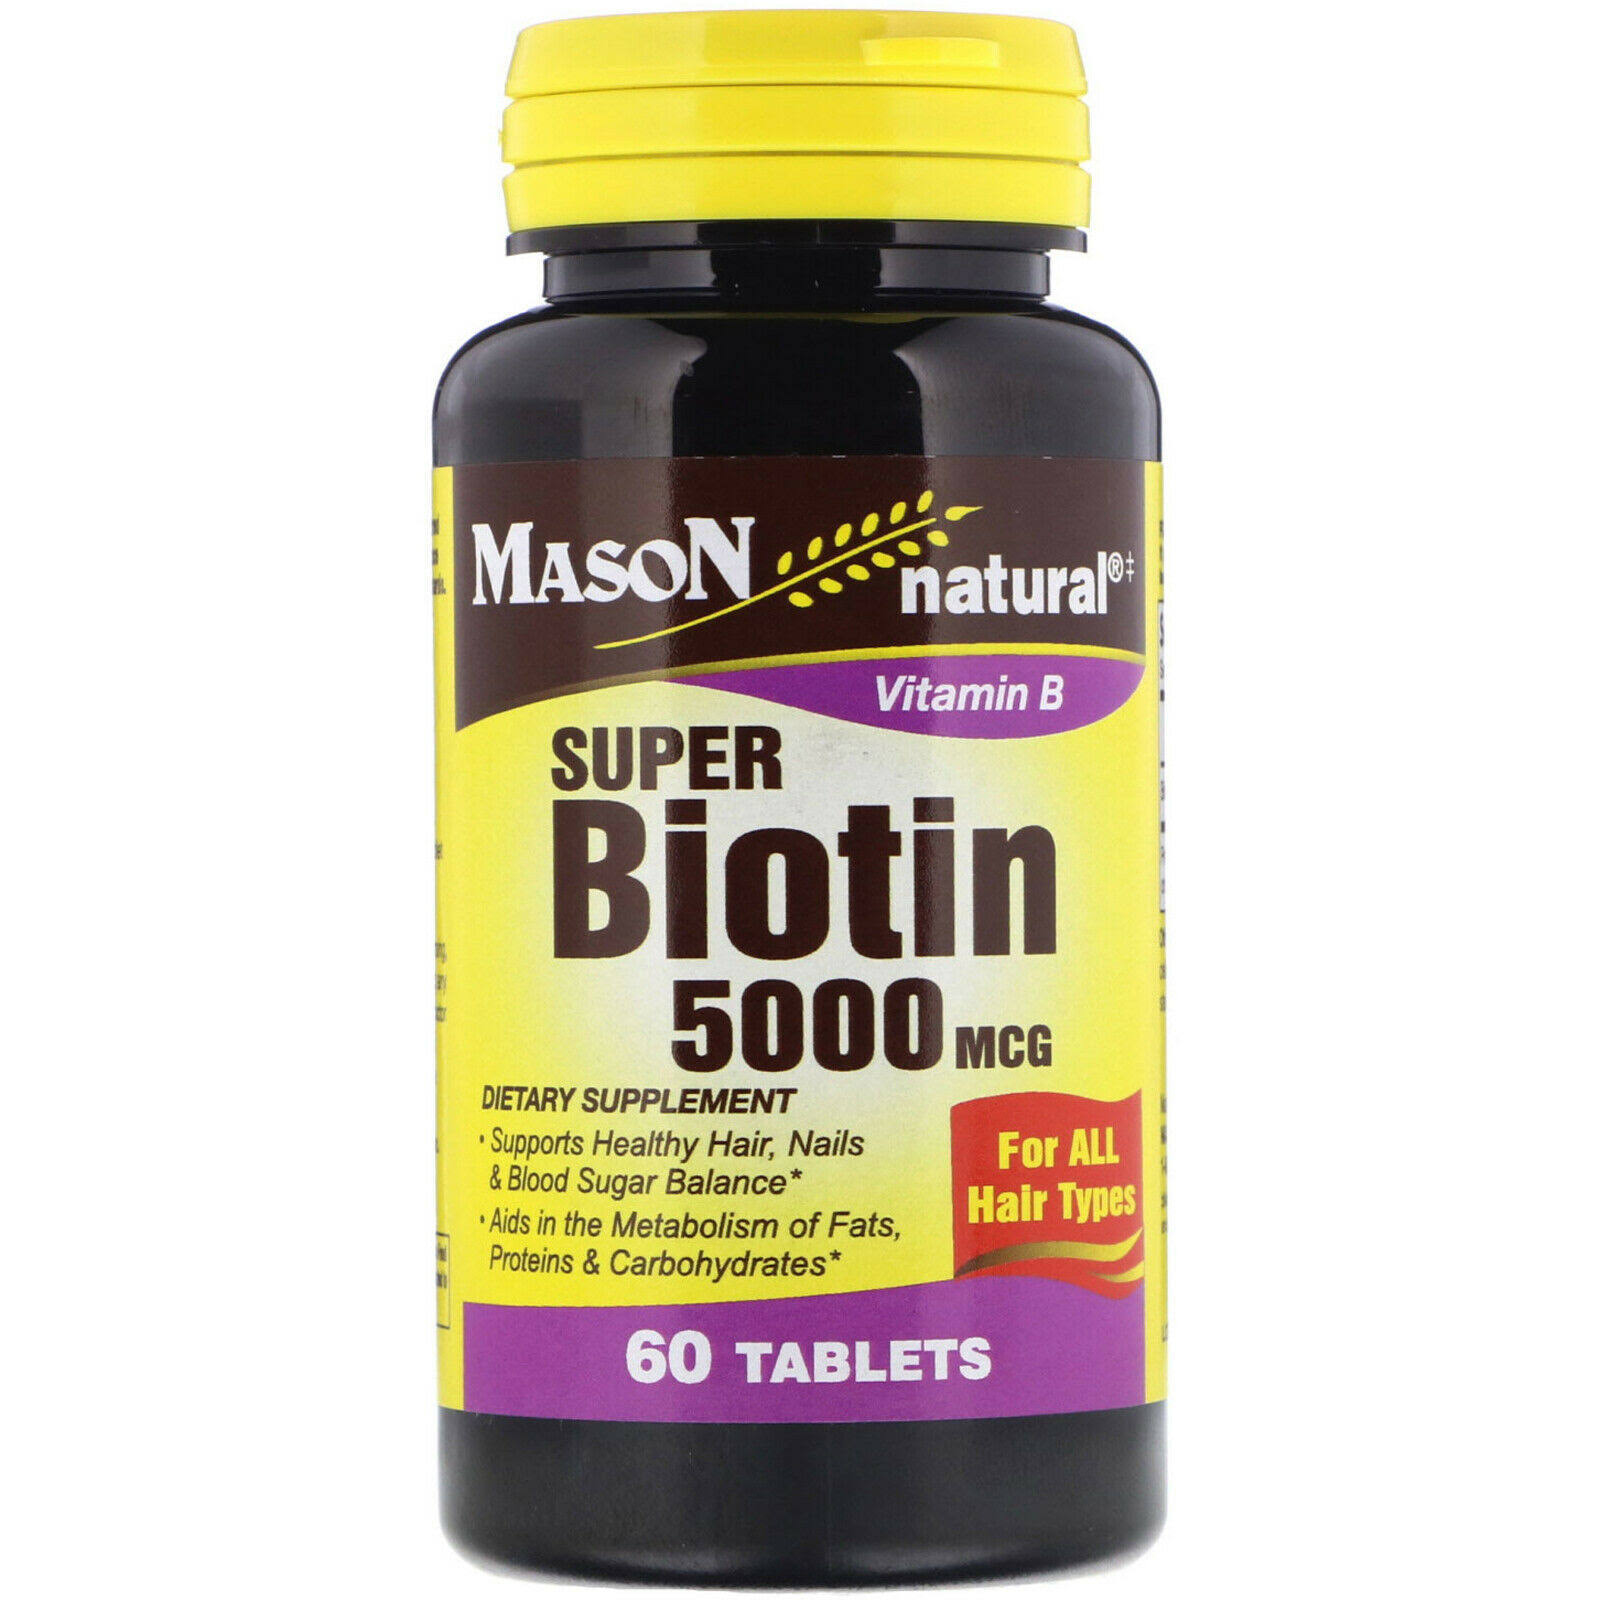 Mason Natural Vitamin B Super Biotin 5000mcg Tablets - x60